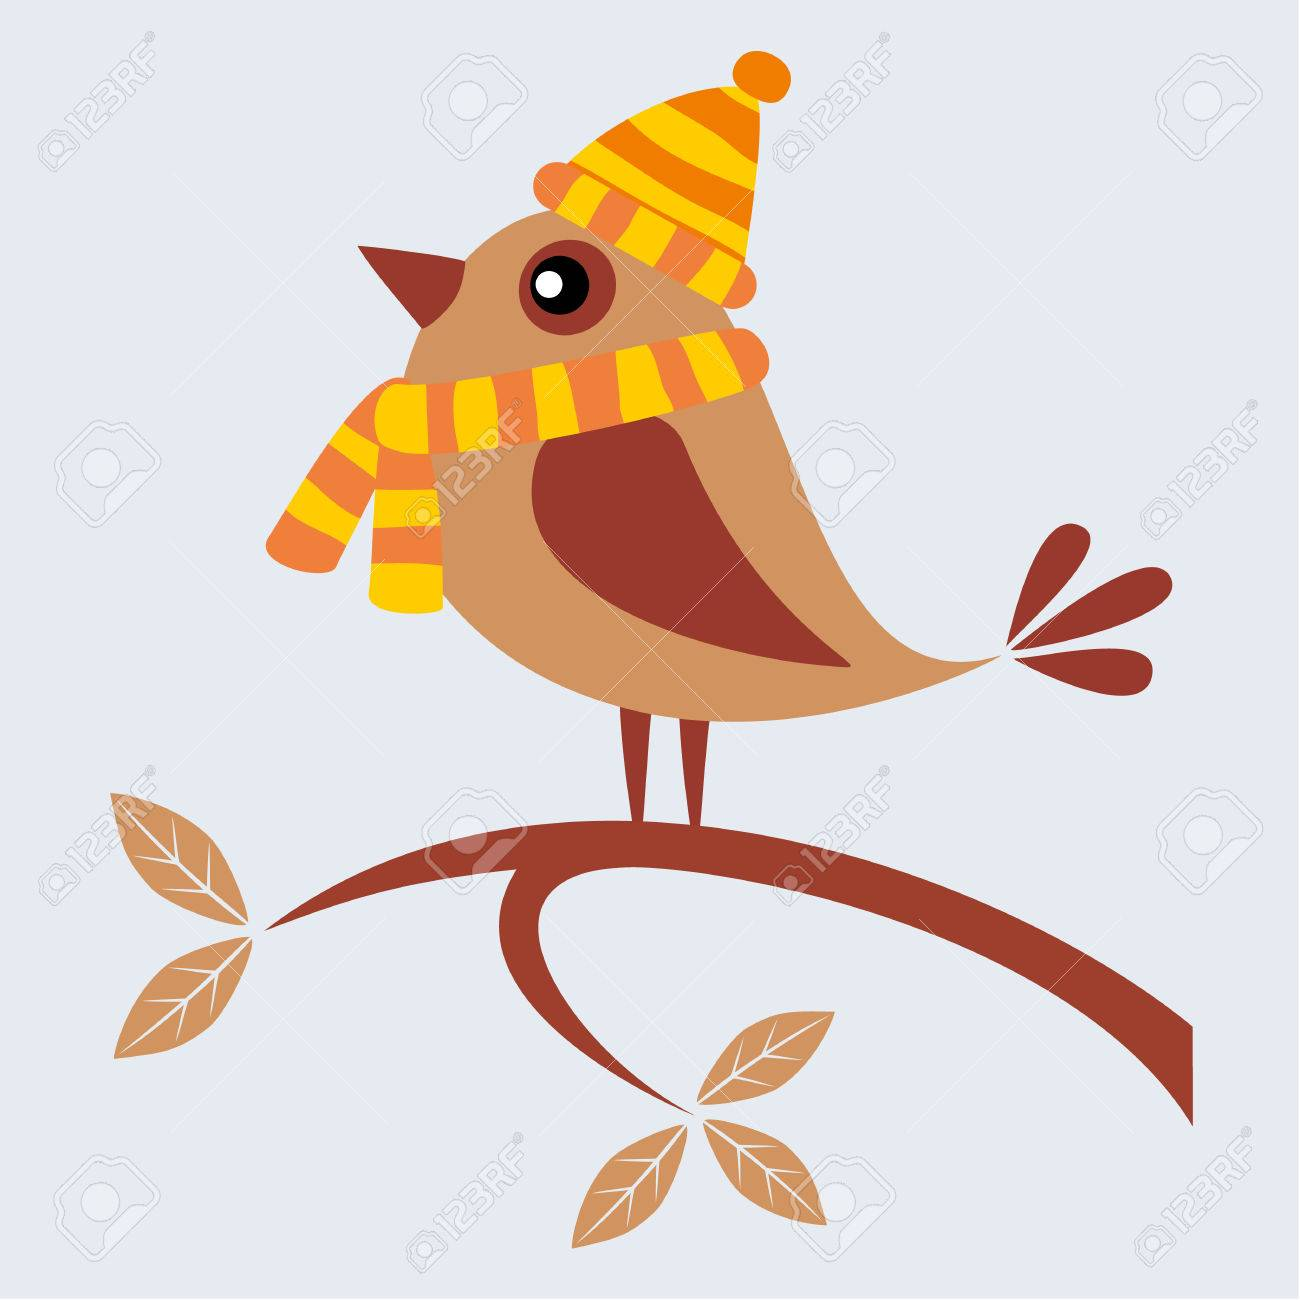 Cute Bird With Scarf And Cap Sitting On Branch In The Autumn Royalty Free Cliparts Vectors And Stock Illustration Image 25210888